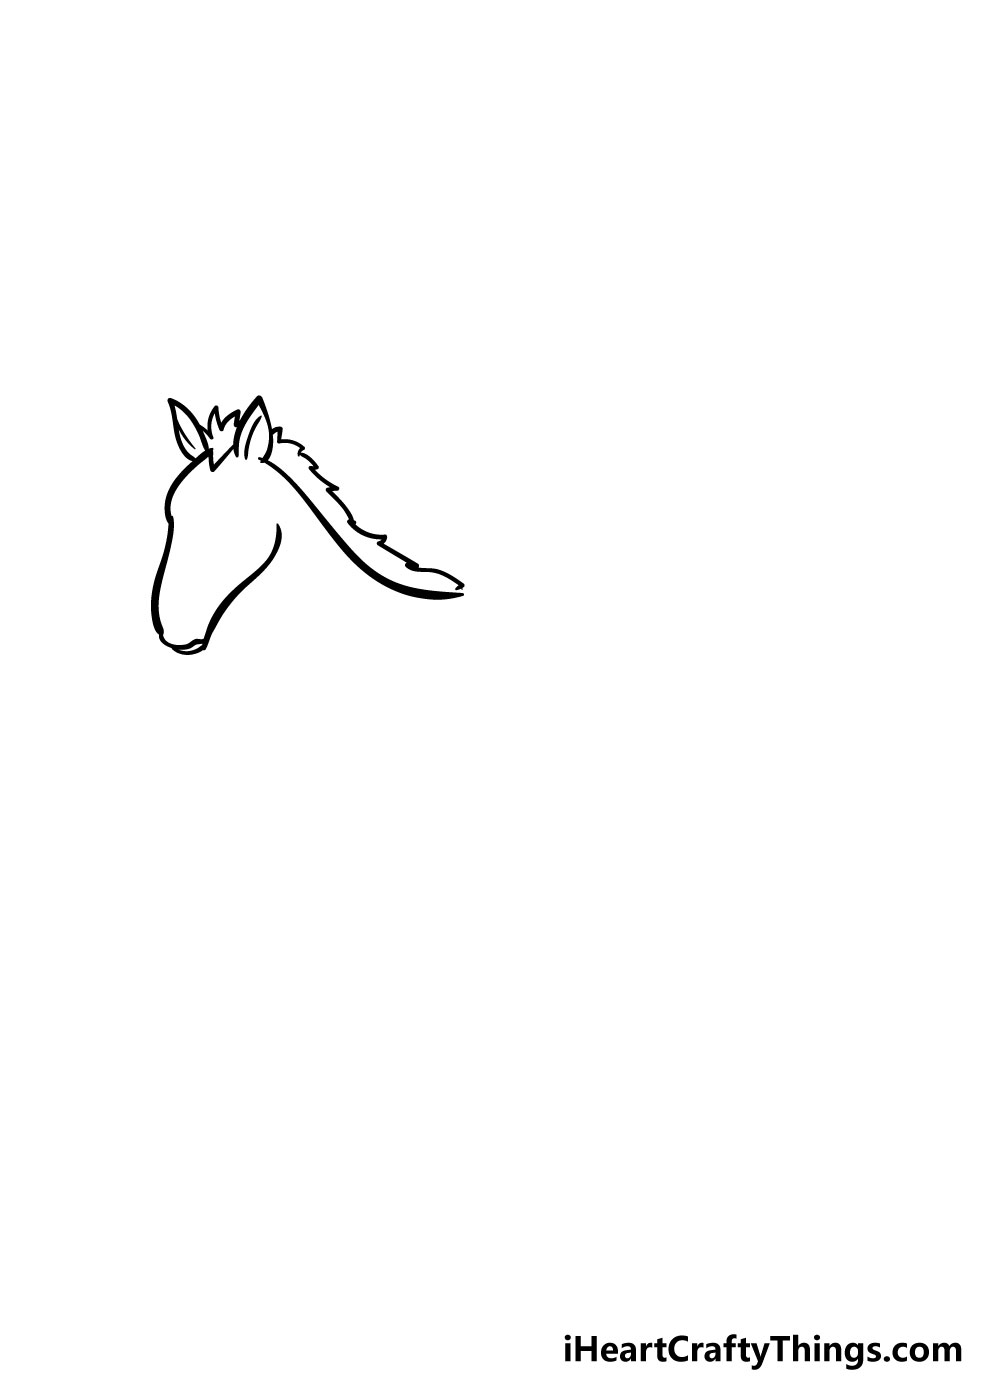 horse drawing step 3